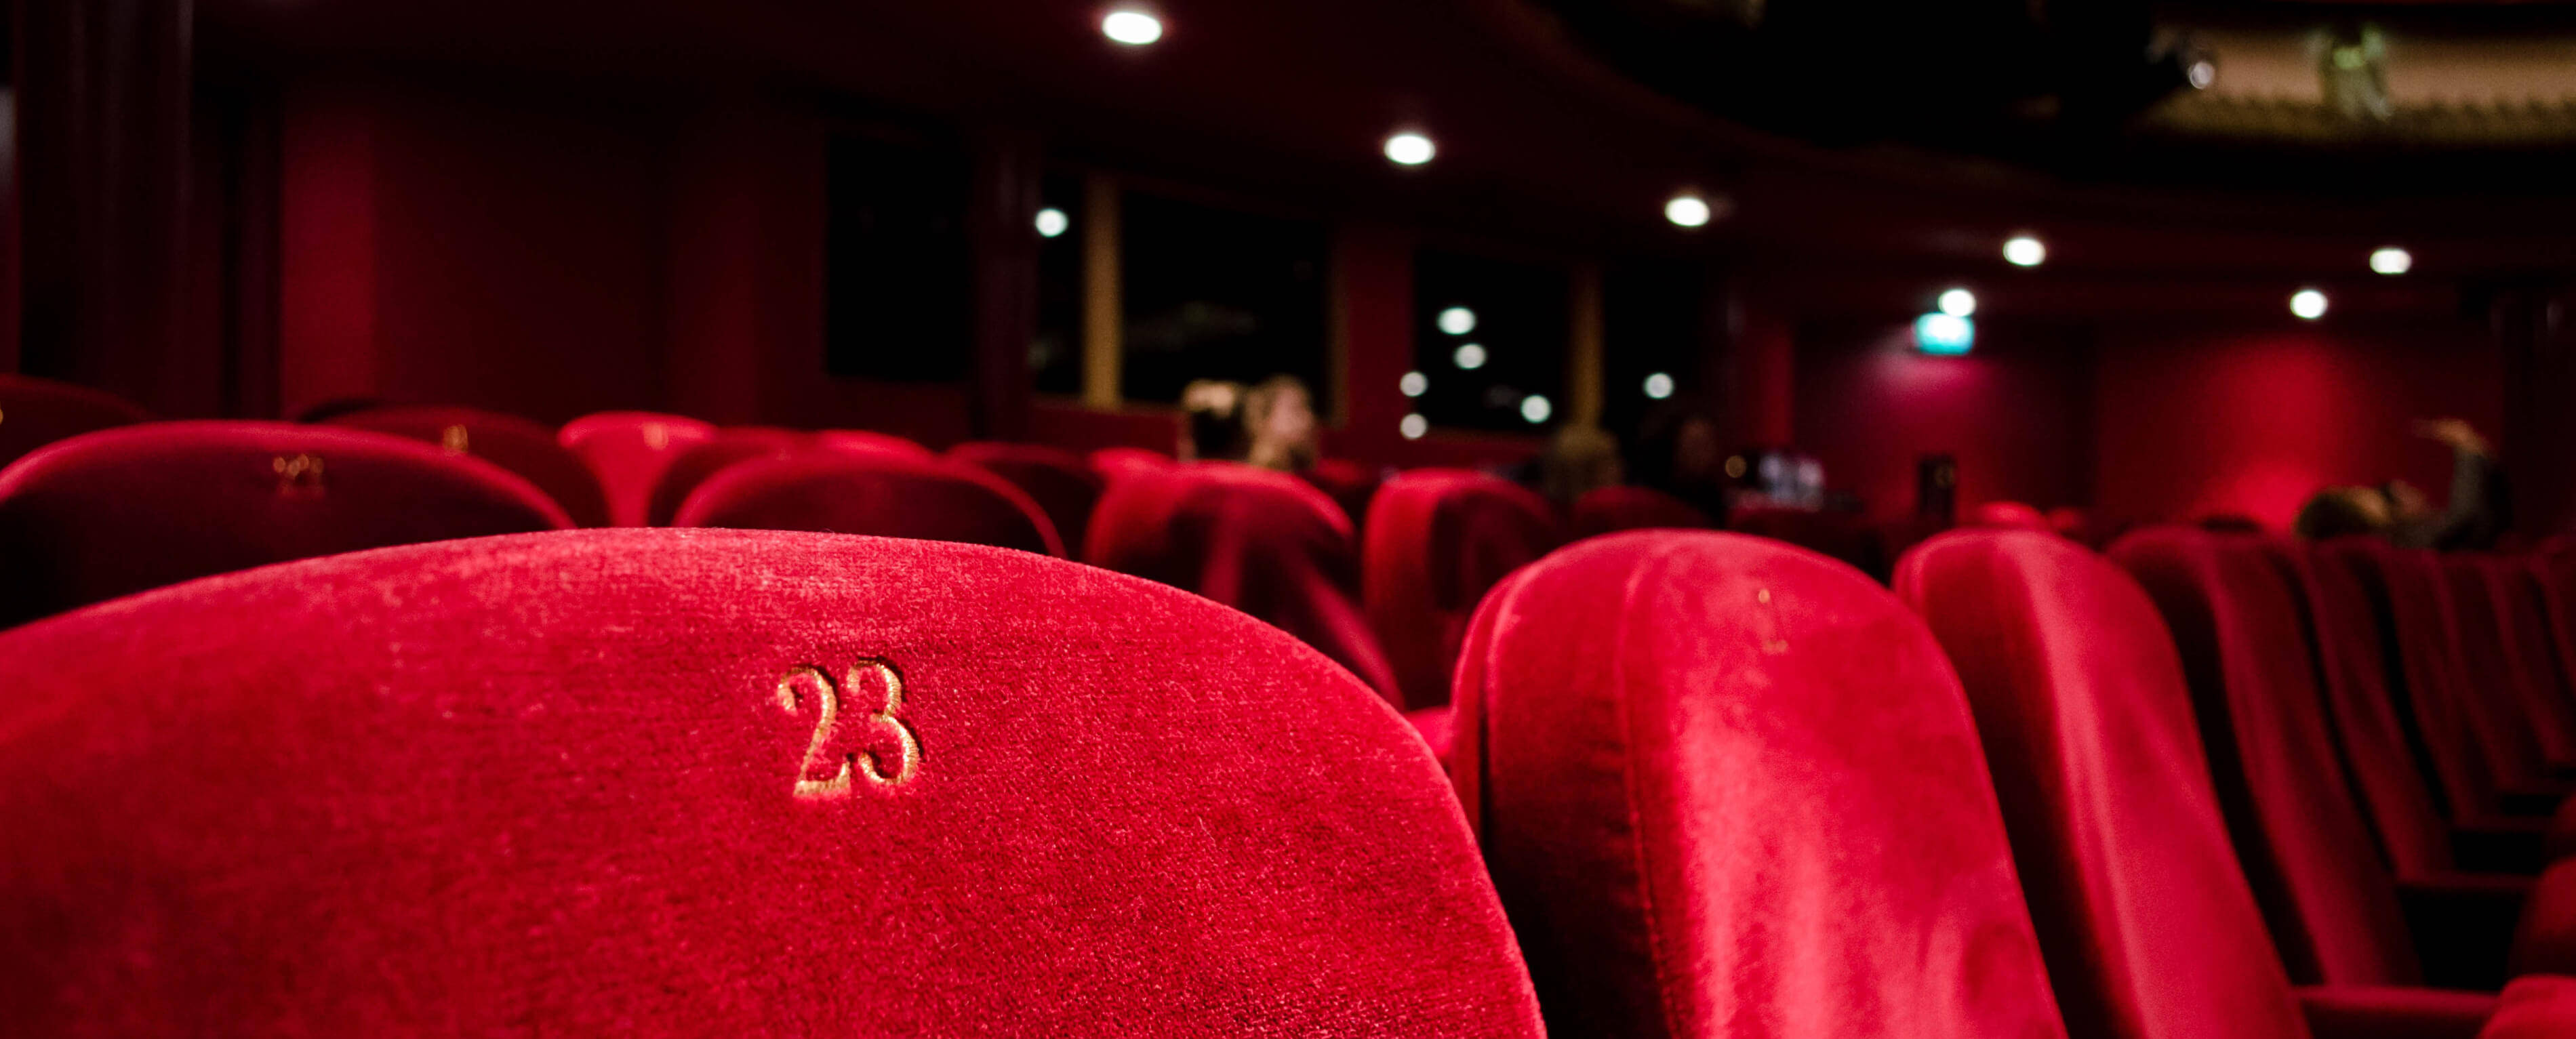 Photograph of theatre seats.